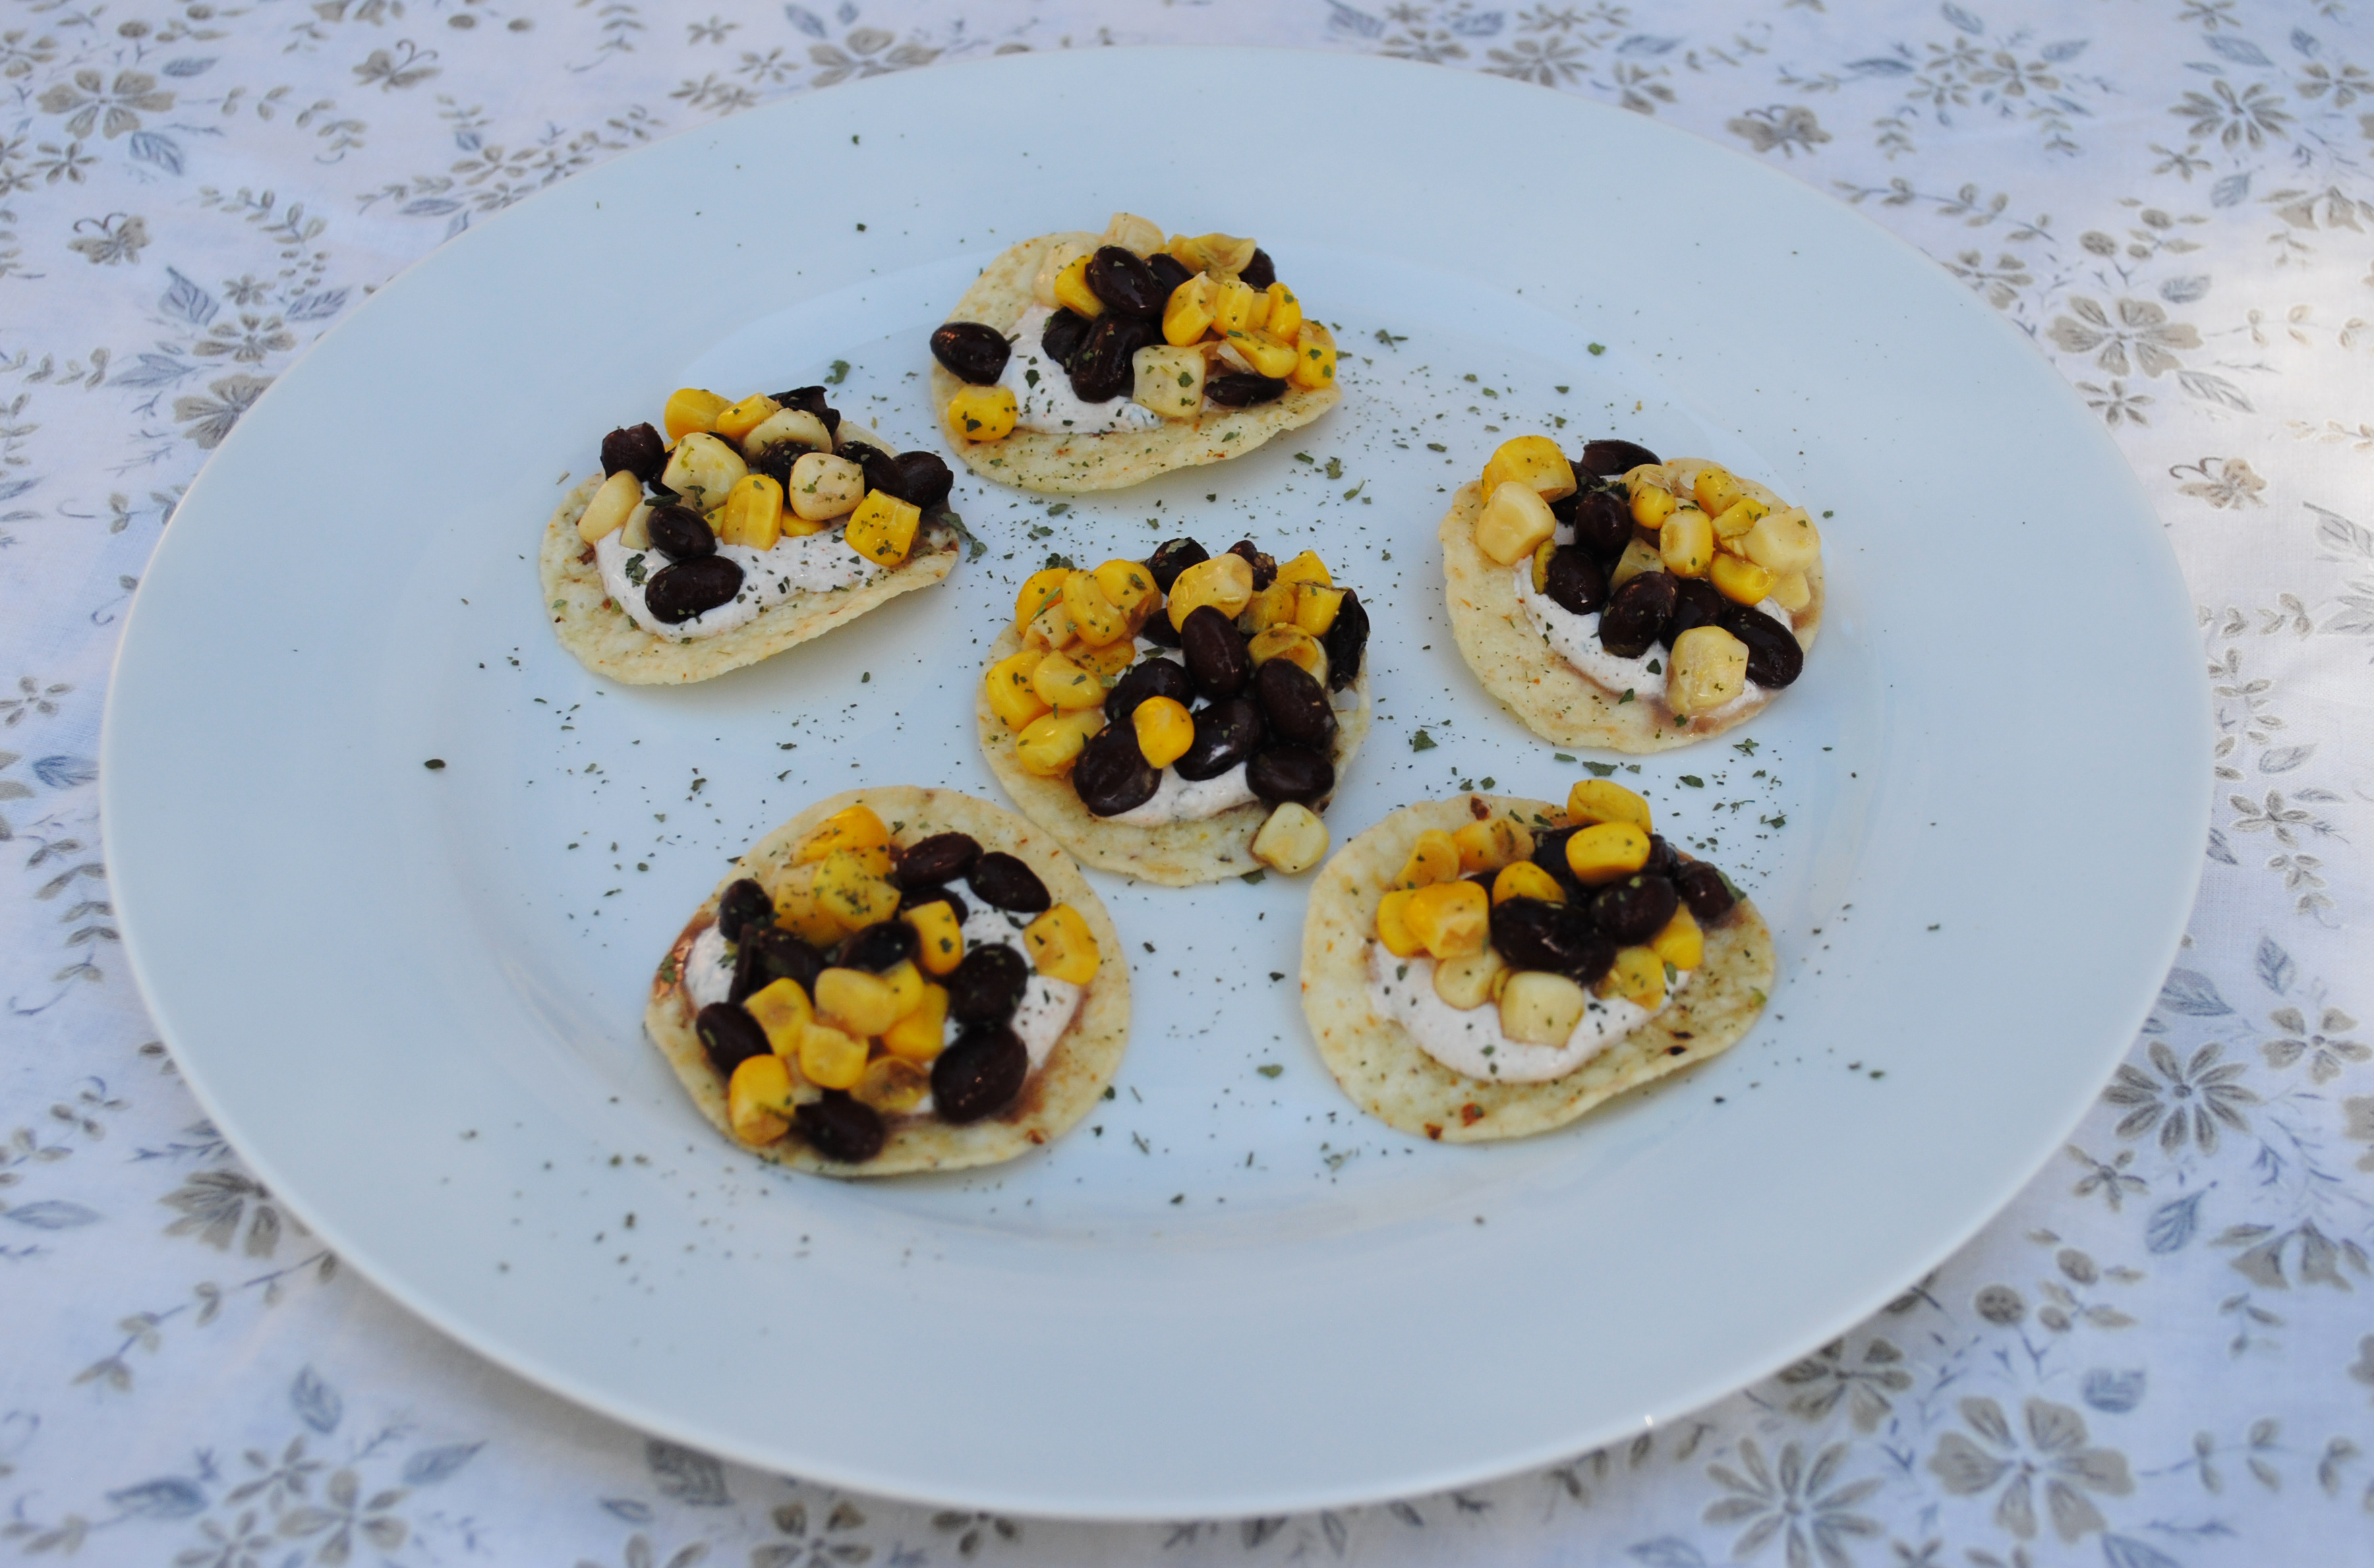 Vegan Tortilla Chips with Black Beans, Corn and Spicy Cilantro Cream